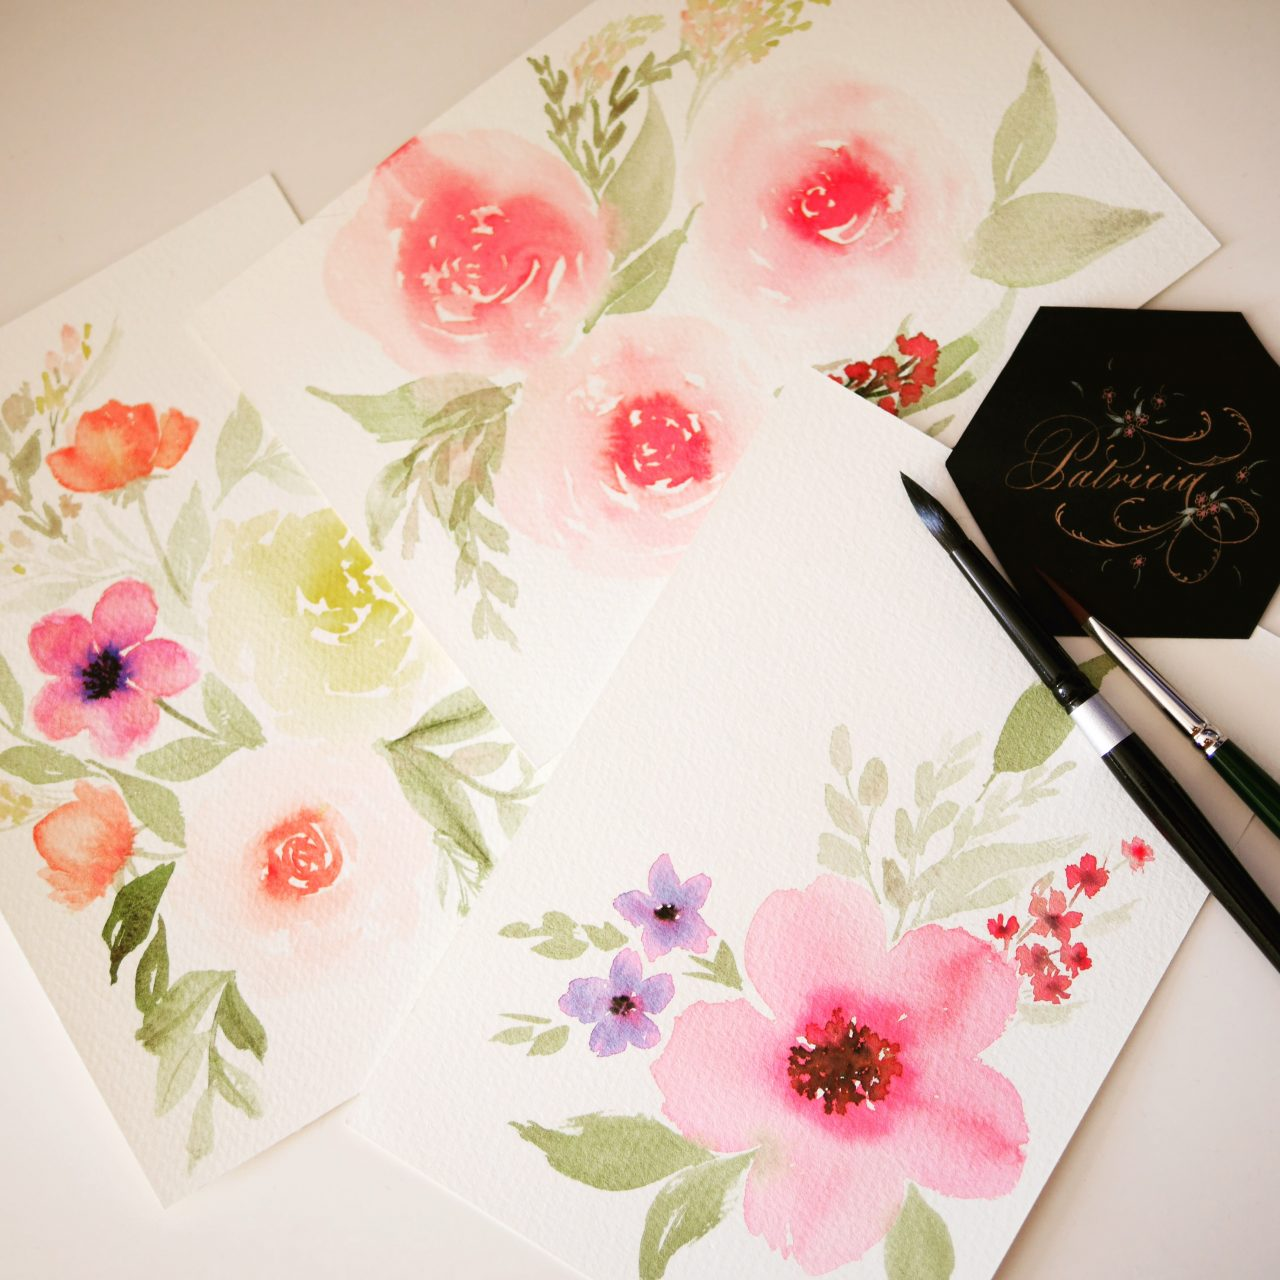 loose florals in watercolor, by patricia alix